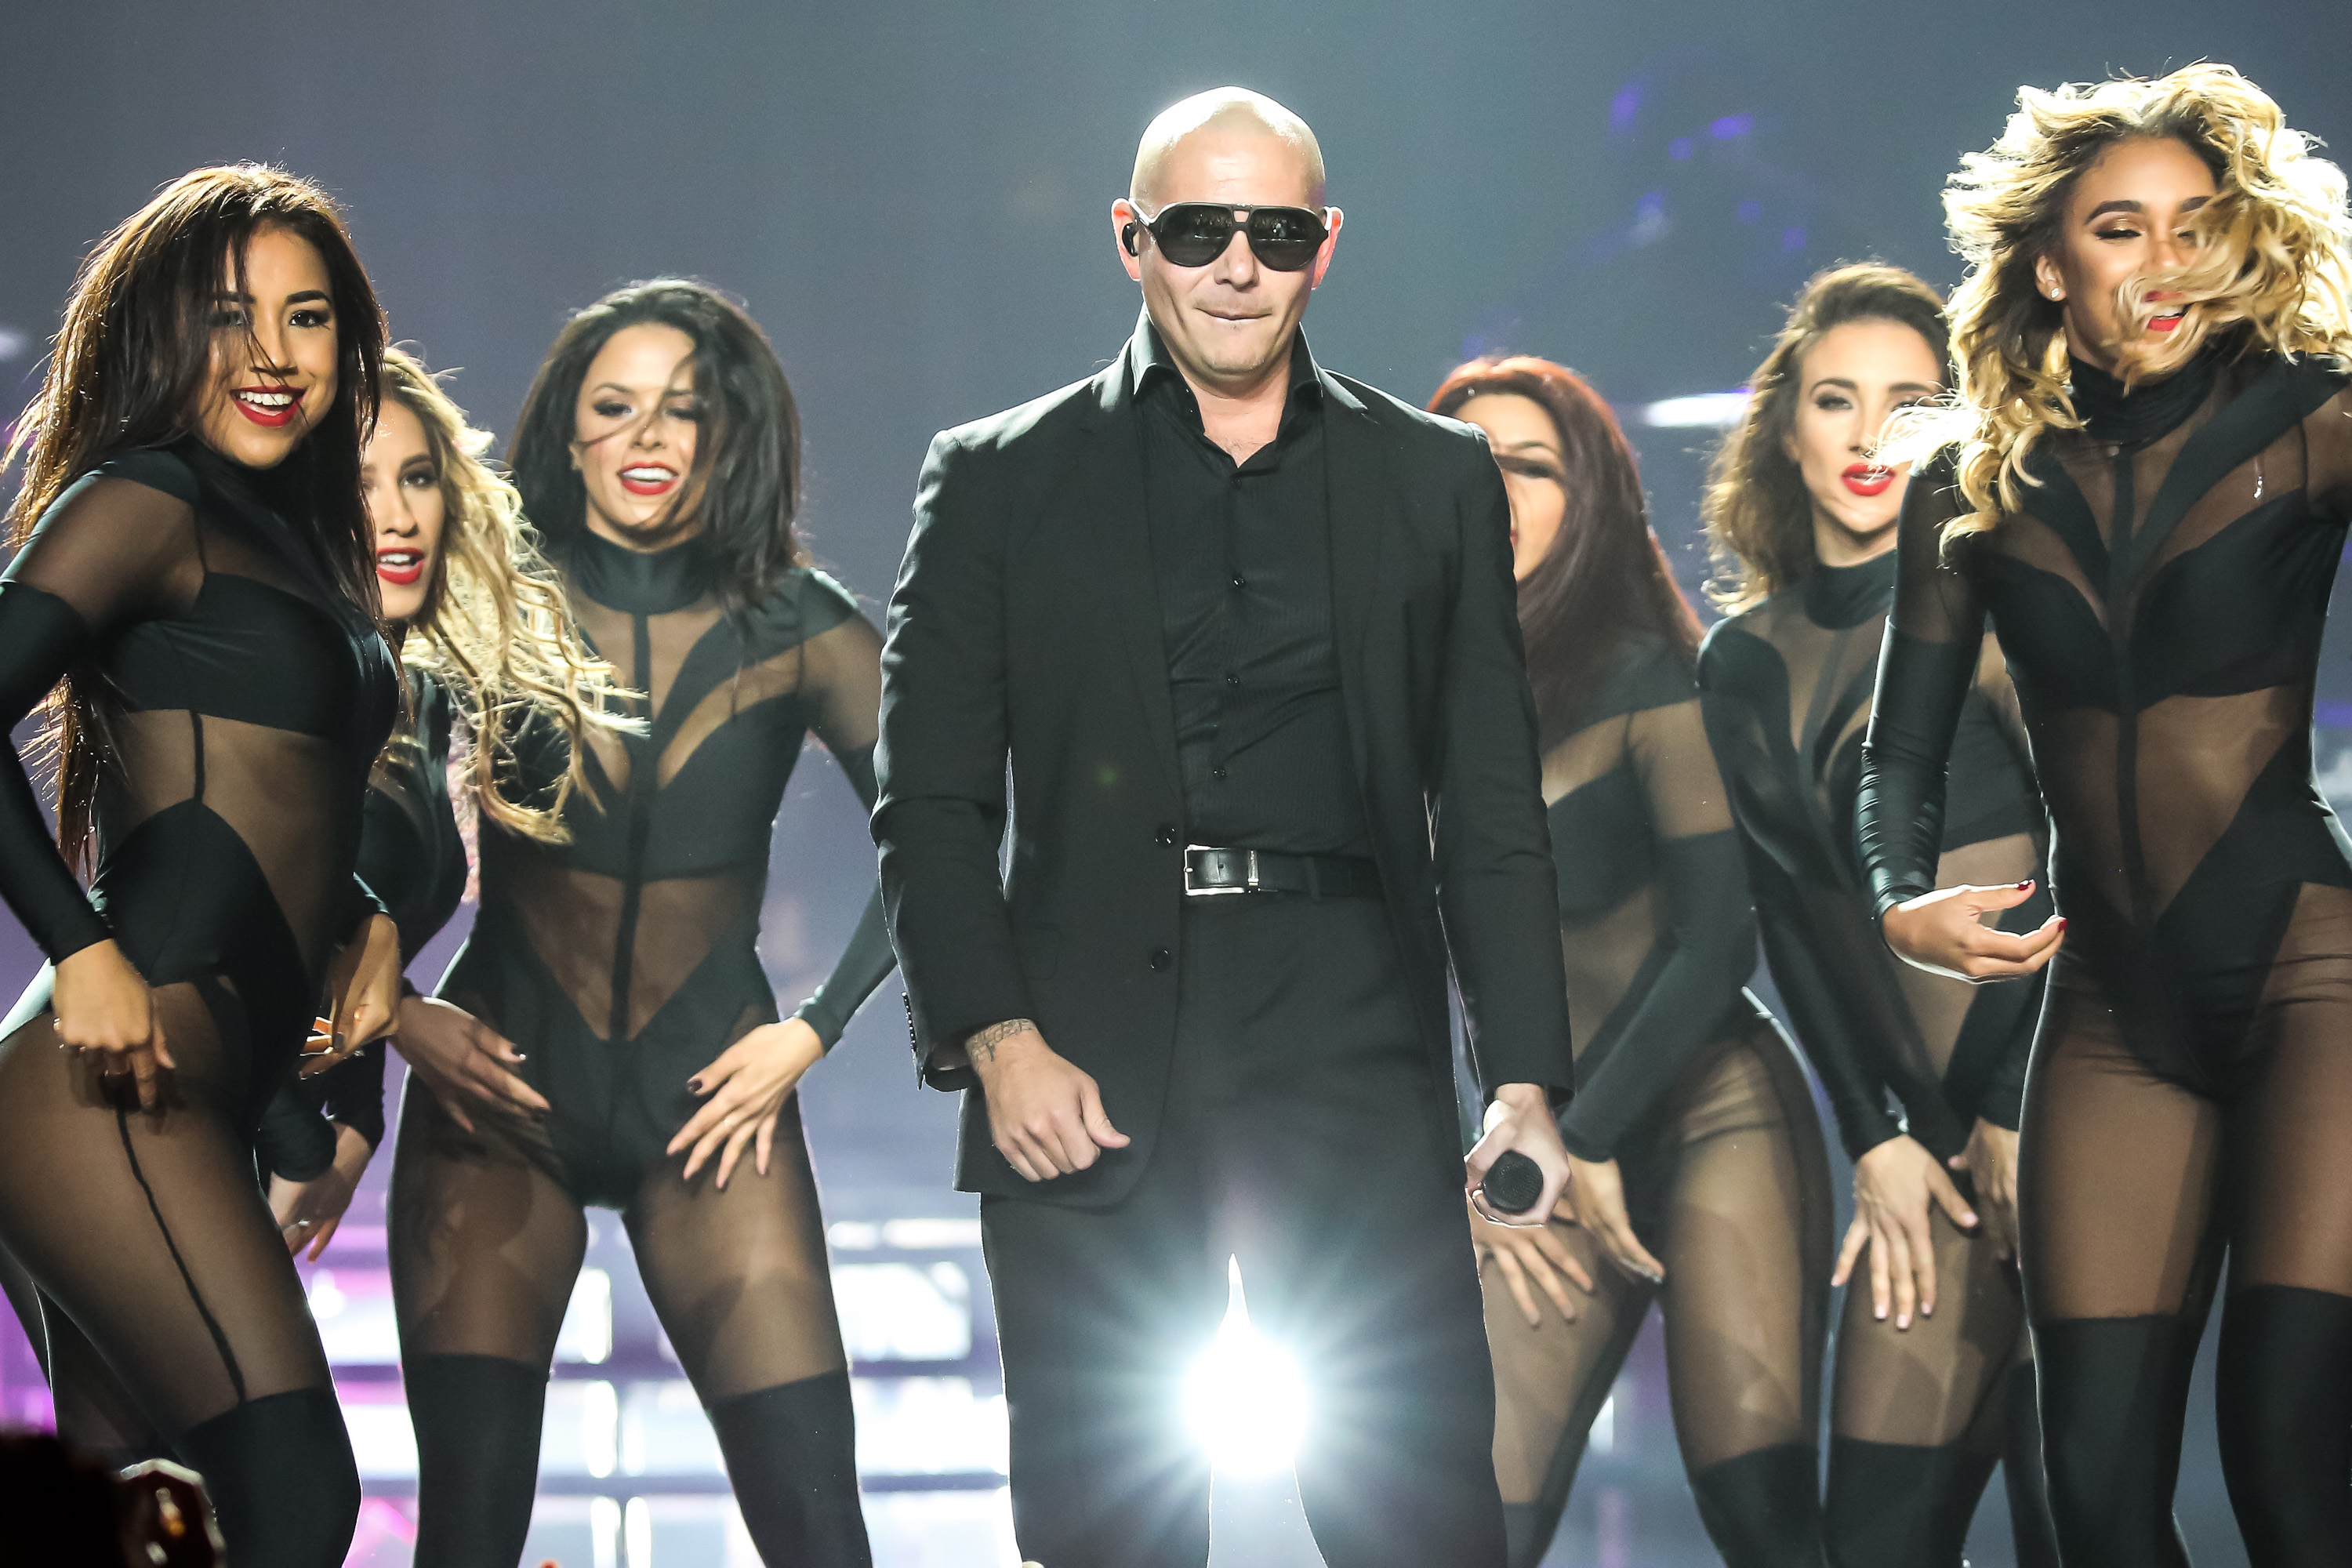 Rapper Pitbull performs at Staples Center on Oct. 10, 2014 in Los Angeles.